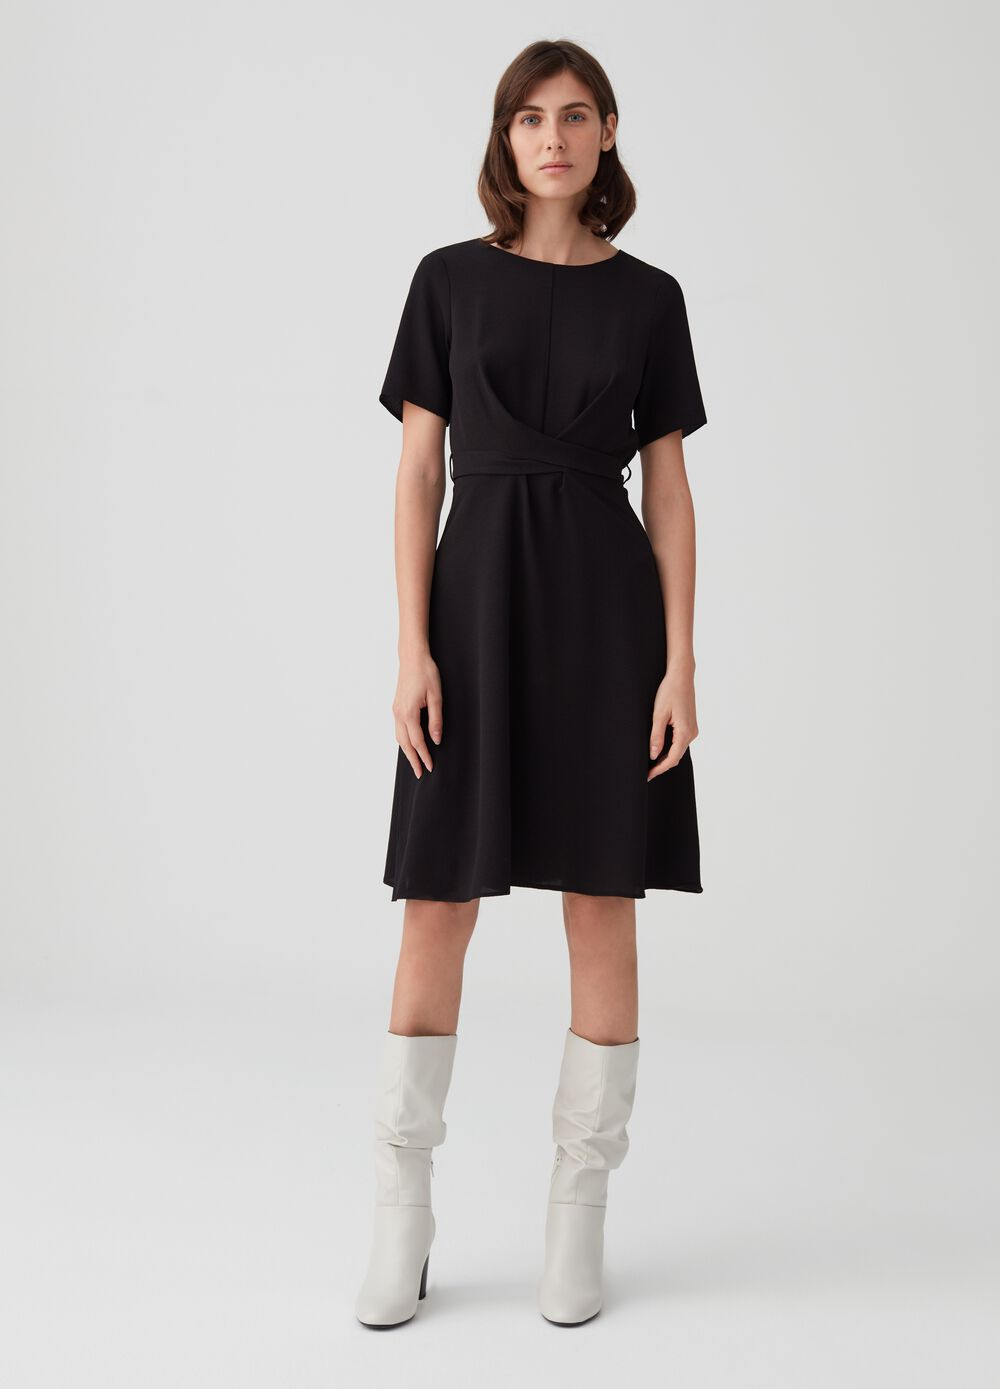 Short-sleeved dress with laces